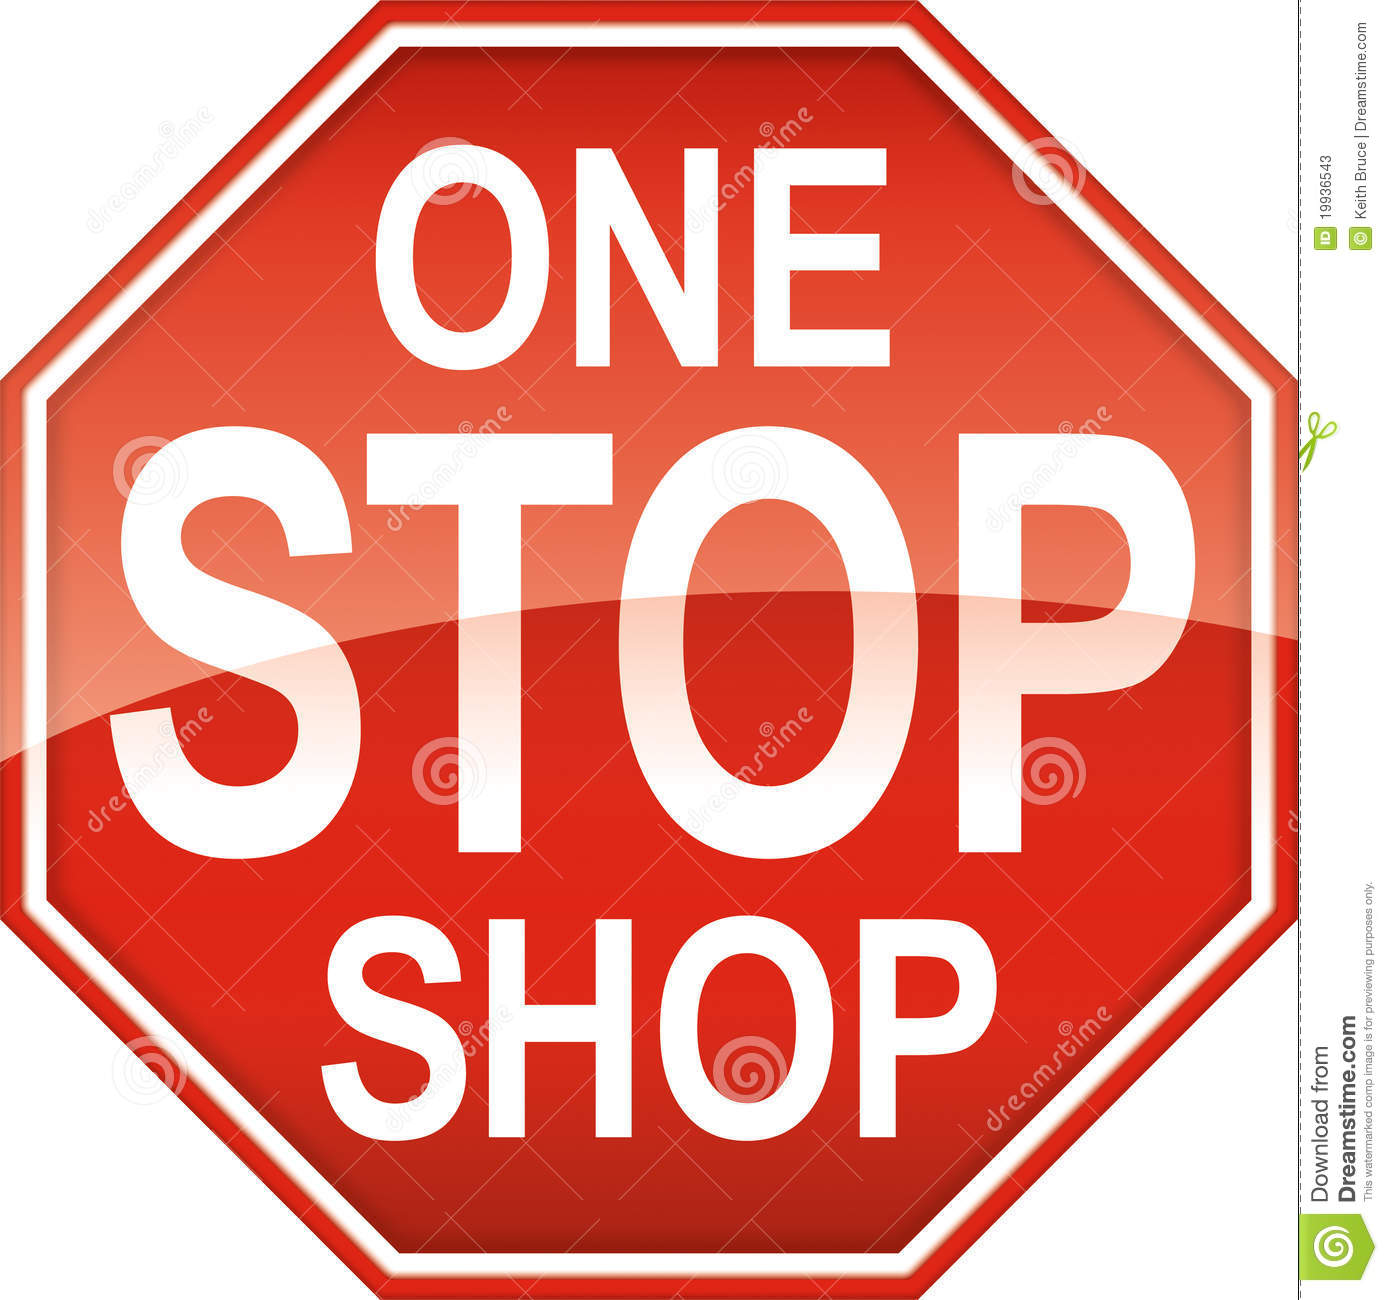 Stop sign shape themed advertising element for 1 stop shopping.